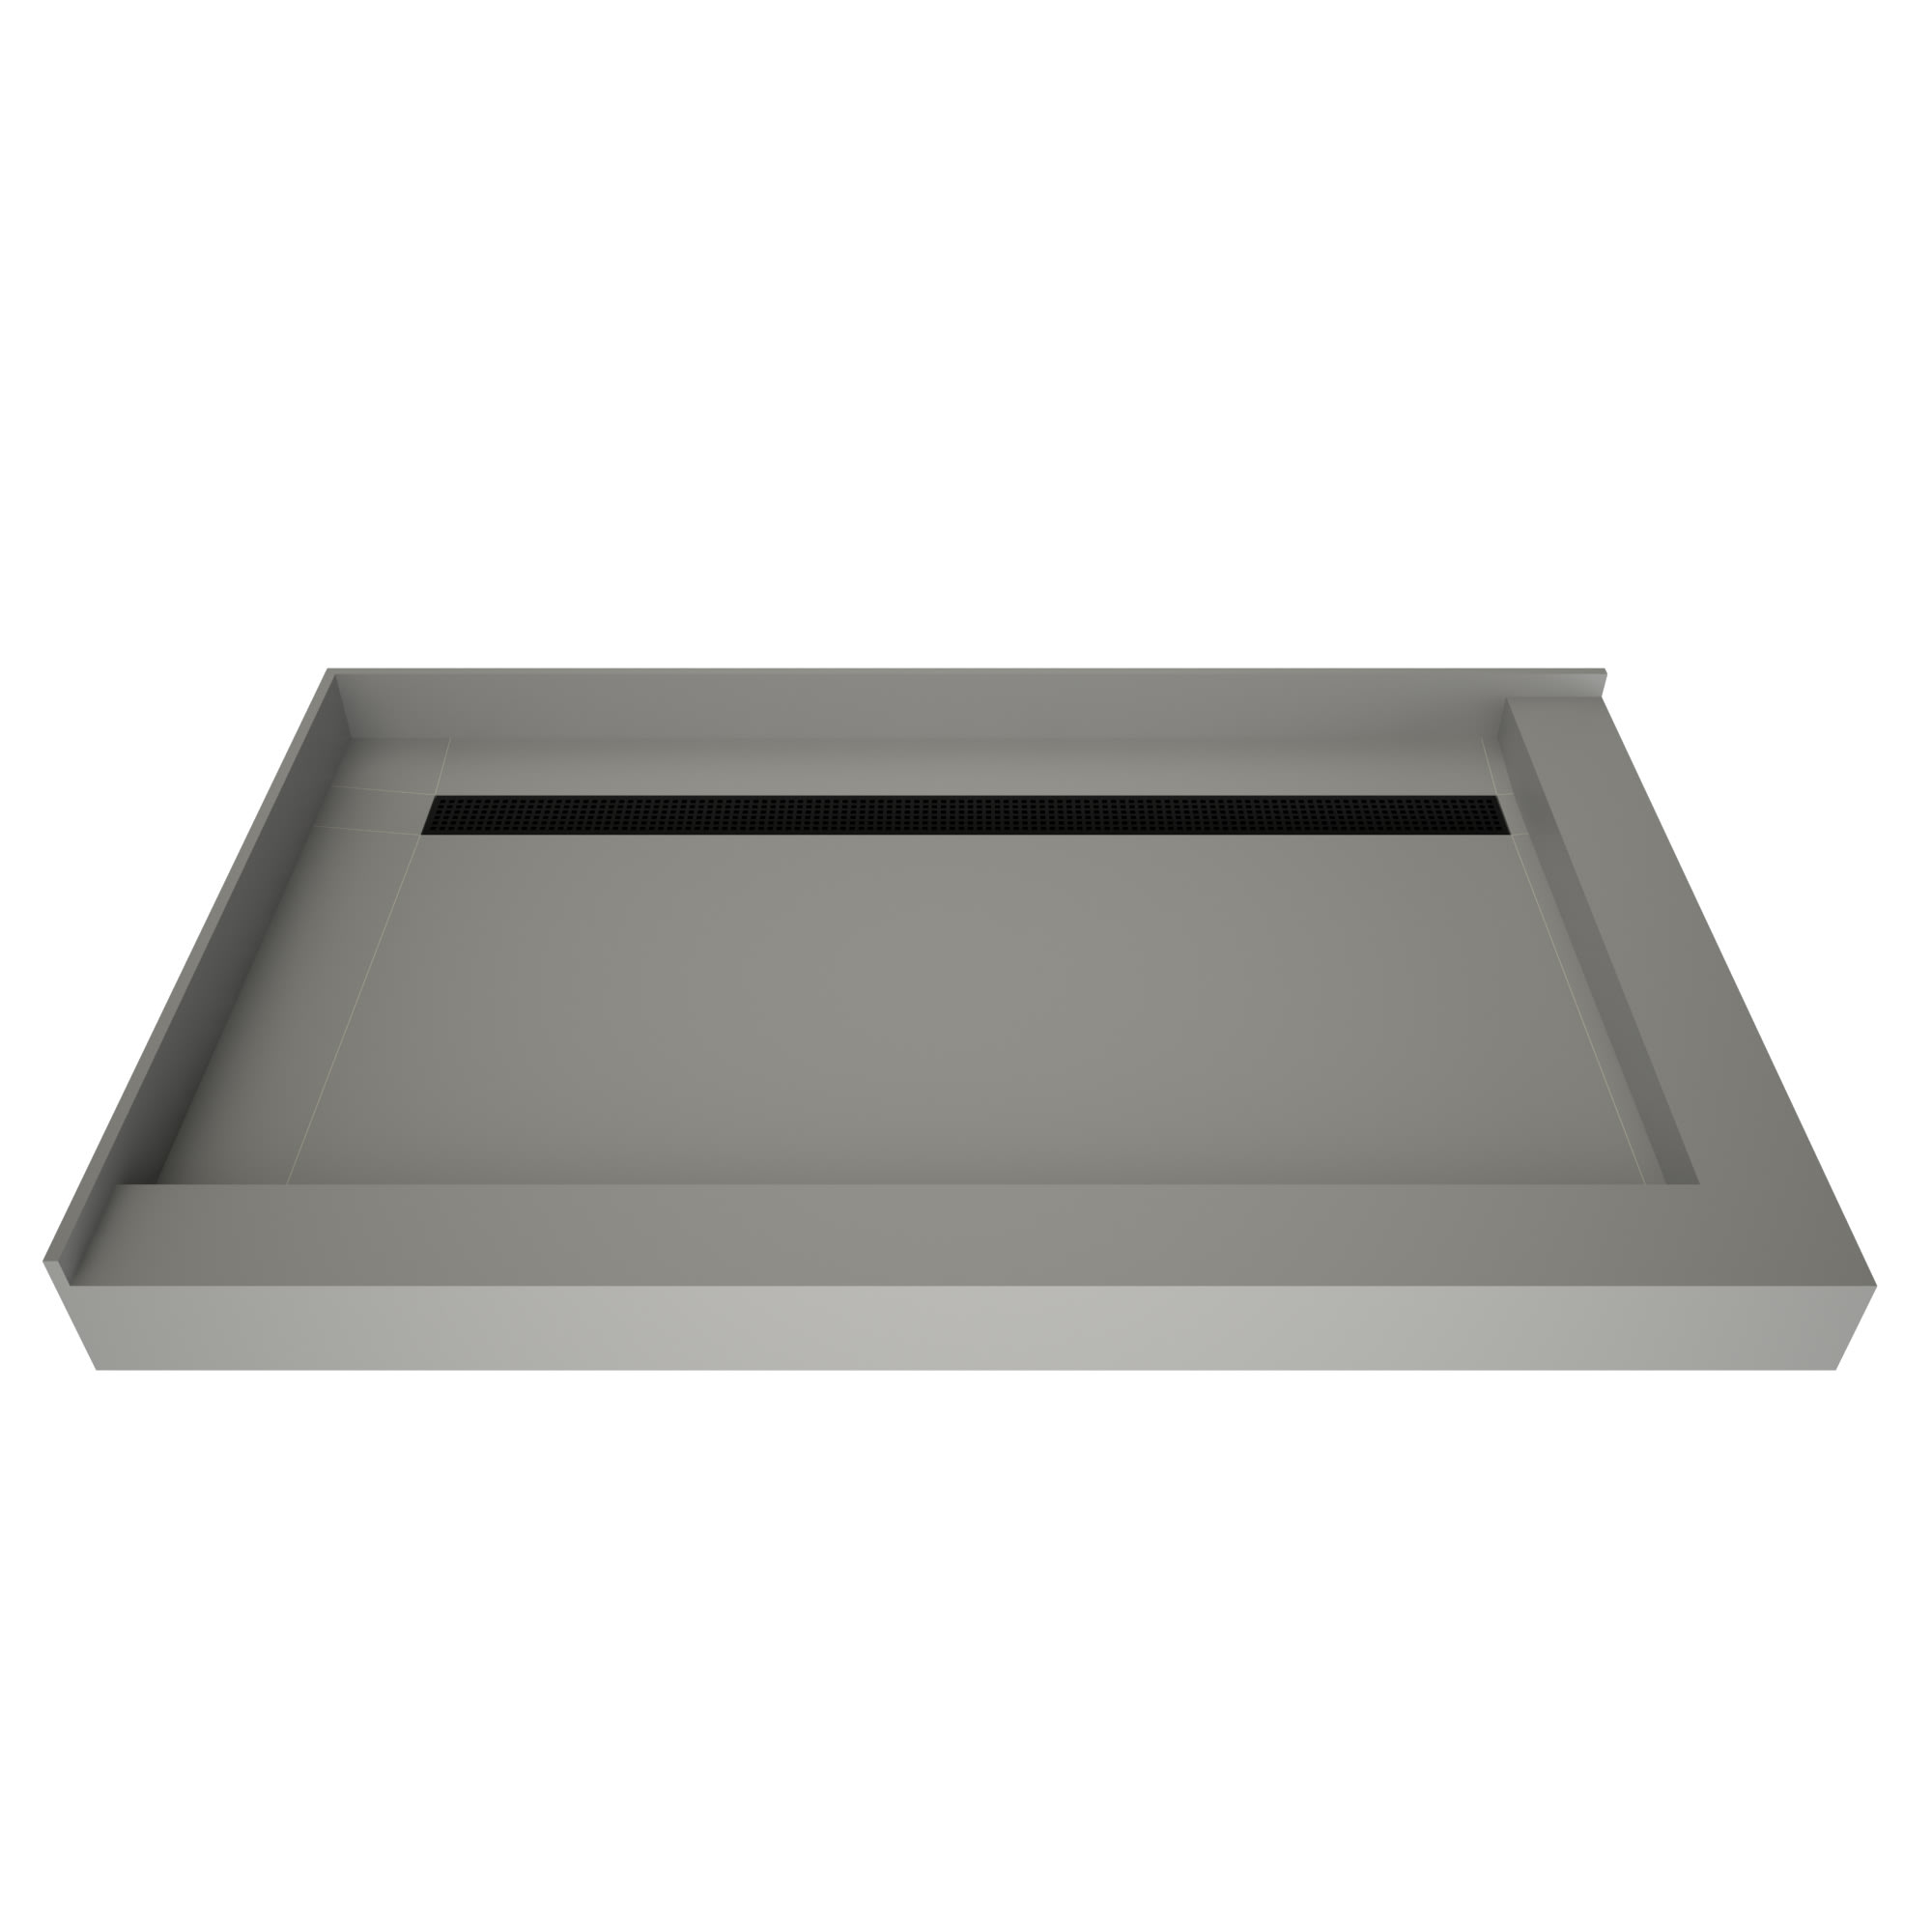 Tile Redi Rt3448bdr Pvc Mb Grey W Matte Black Drain Redi Trench 48 X 34 Rectangular Shower Base With Double Threshold And Rear Drain Faucet Com